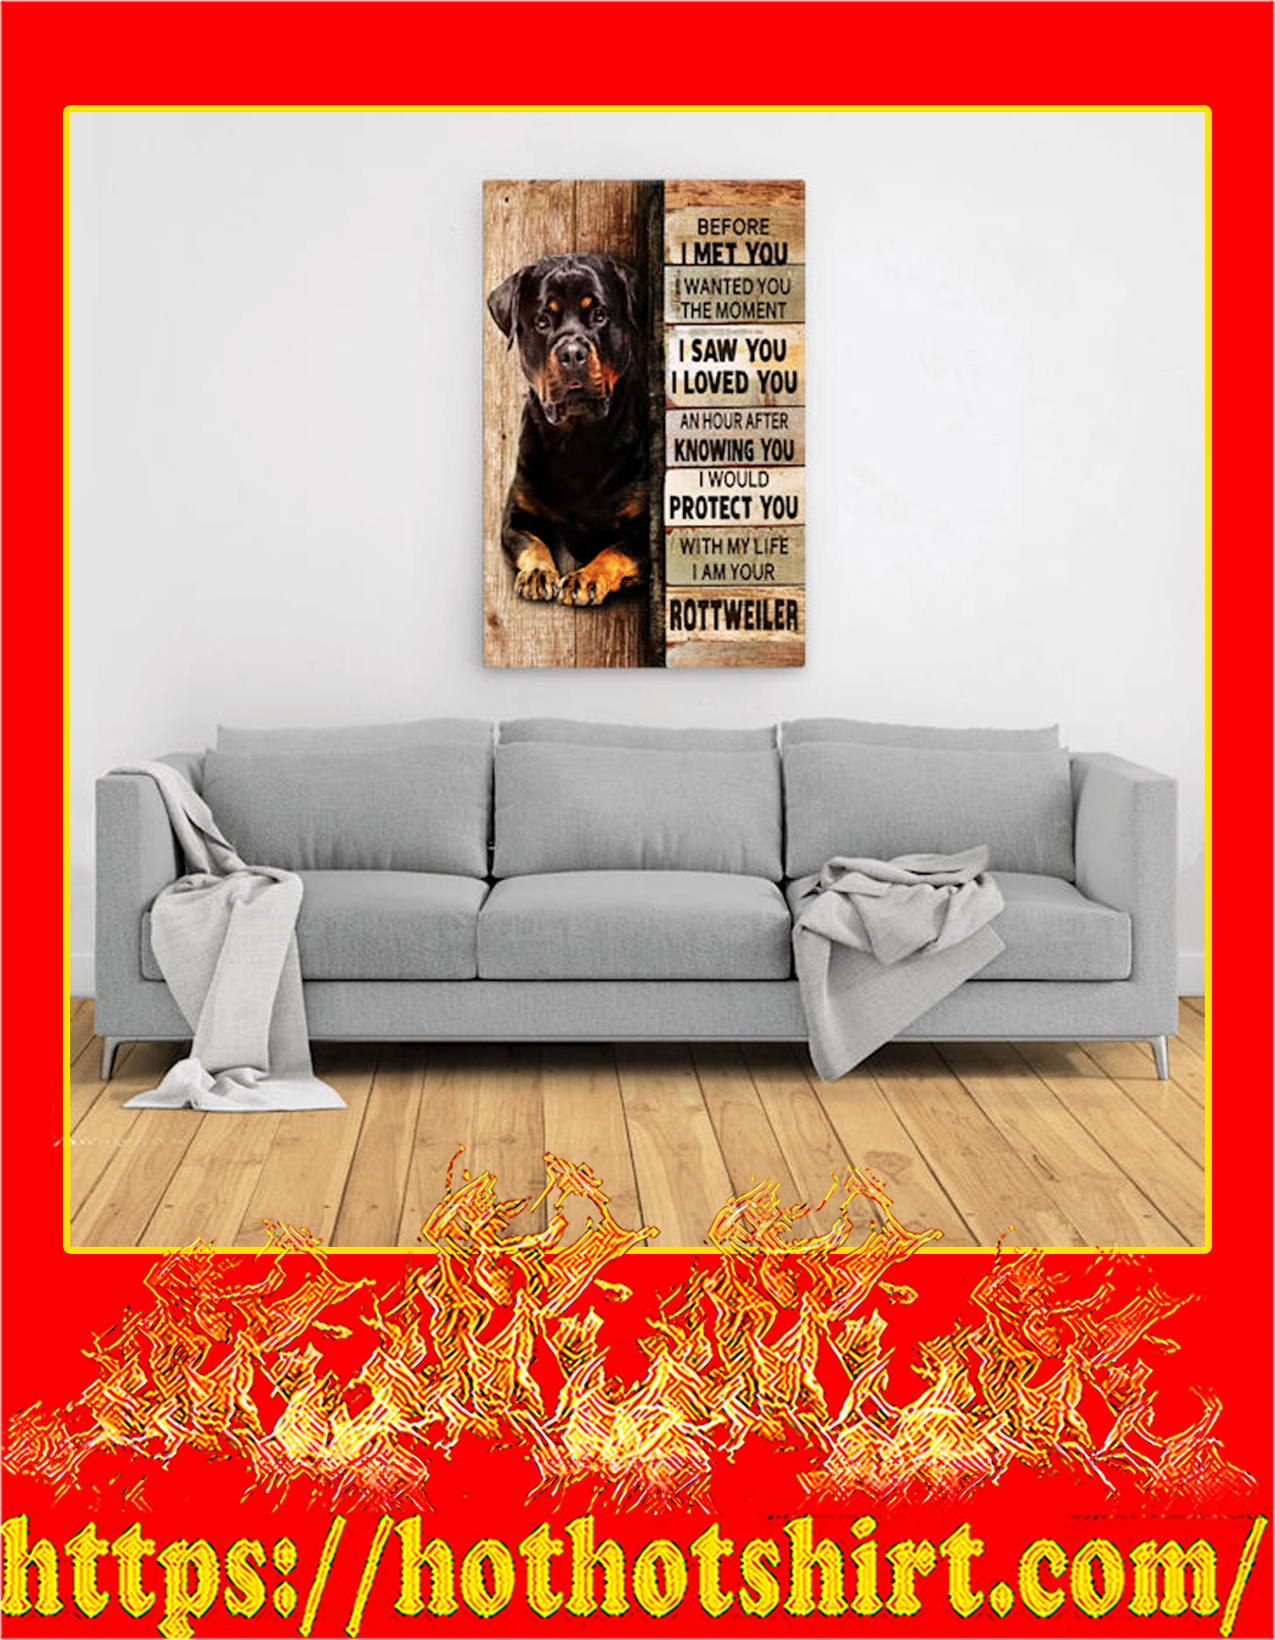 Rottweiler before i met you canvas prints - large size